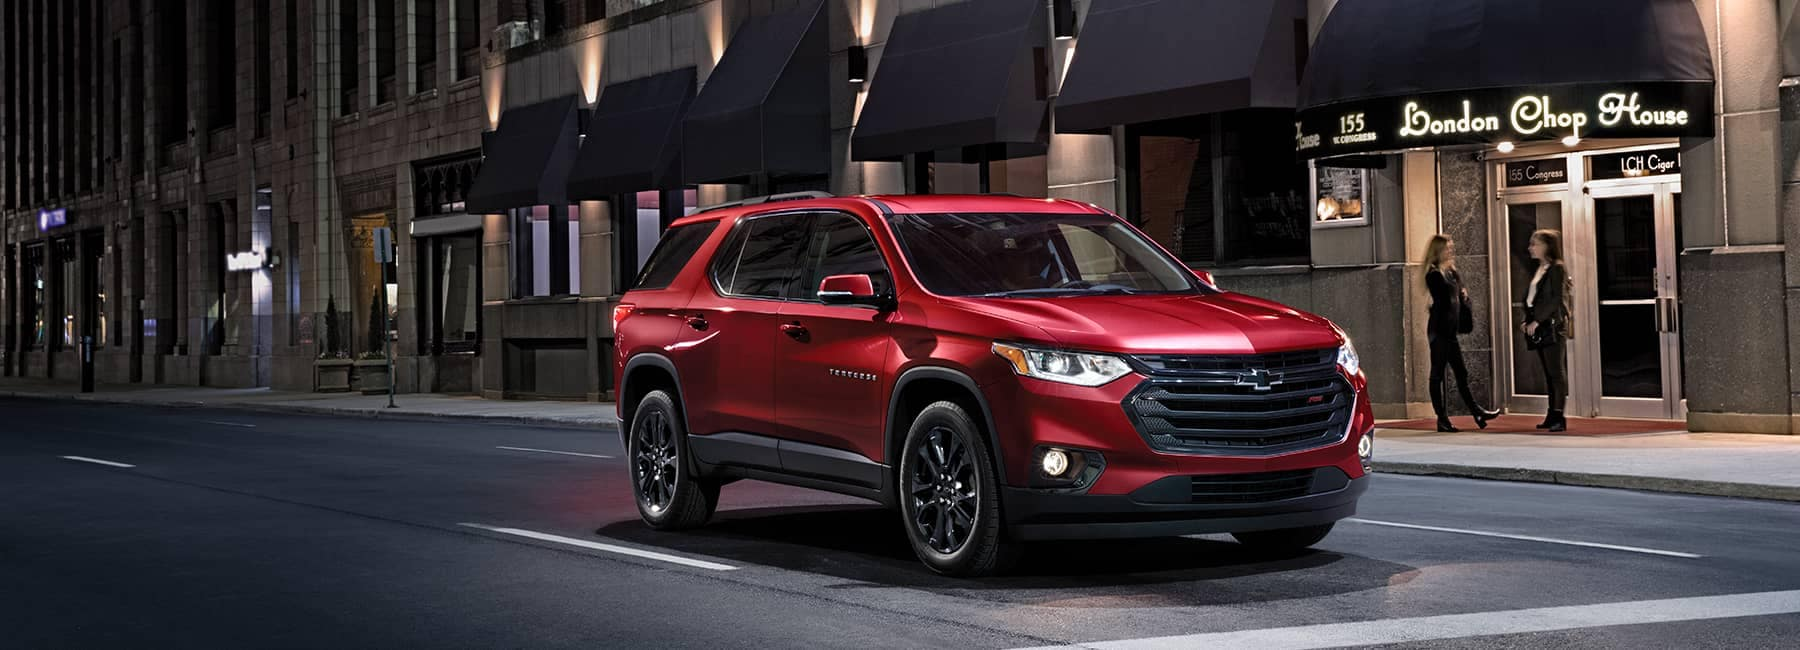 Red 2020 Chevrolet Traverse on a City St at Night_mobile